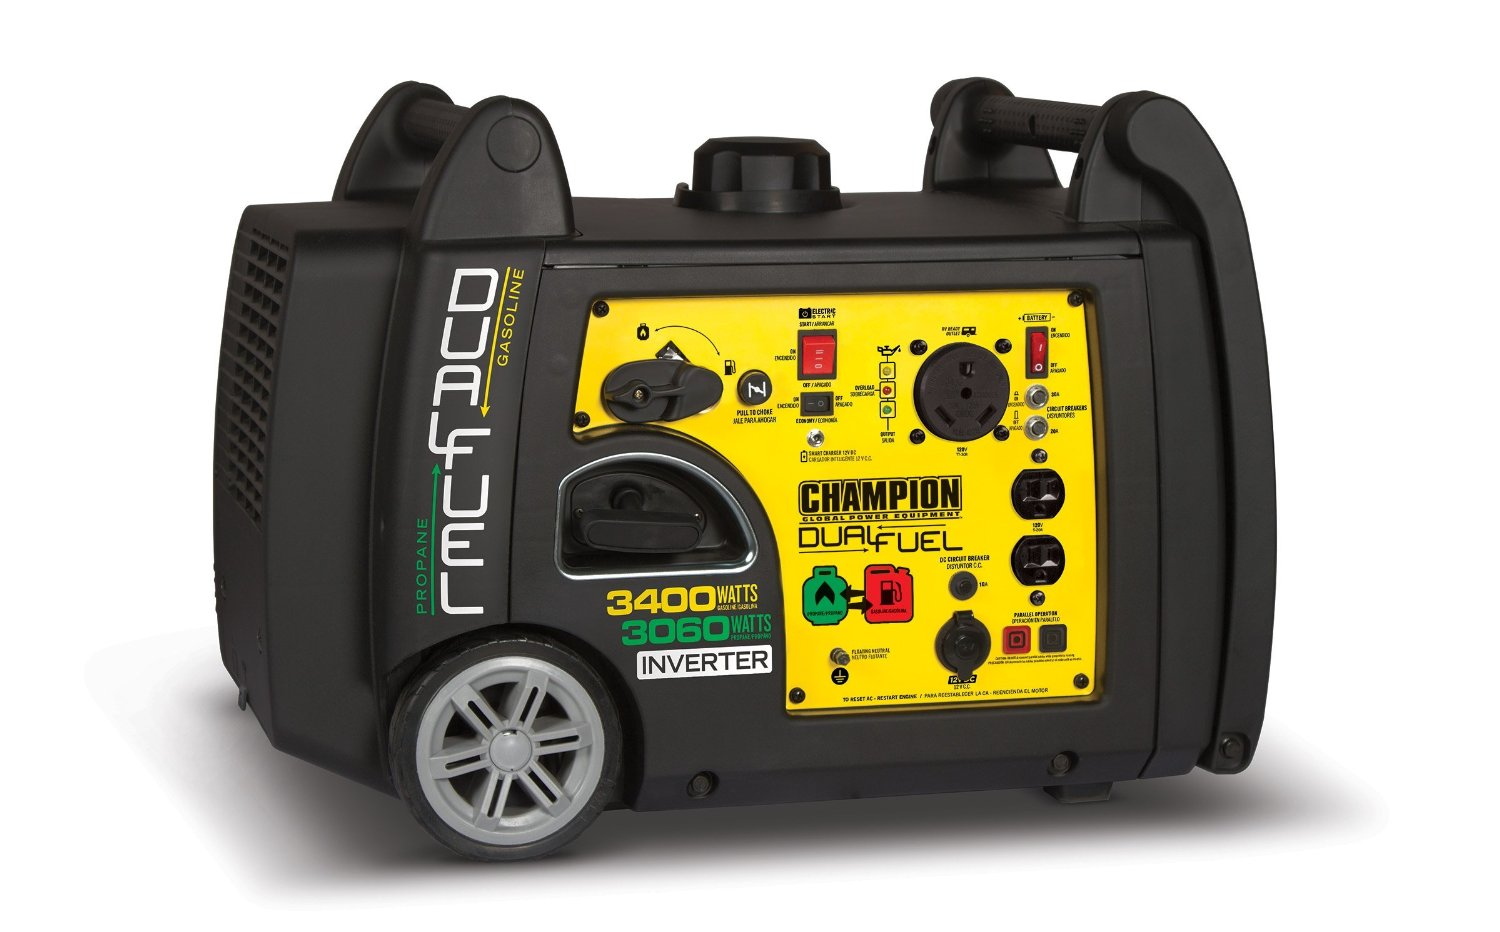 Champion Power Equipment 100263 3400 Watt Dual Fuel RV Ready Portable Inverter Generator